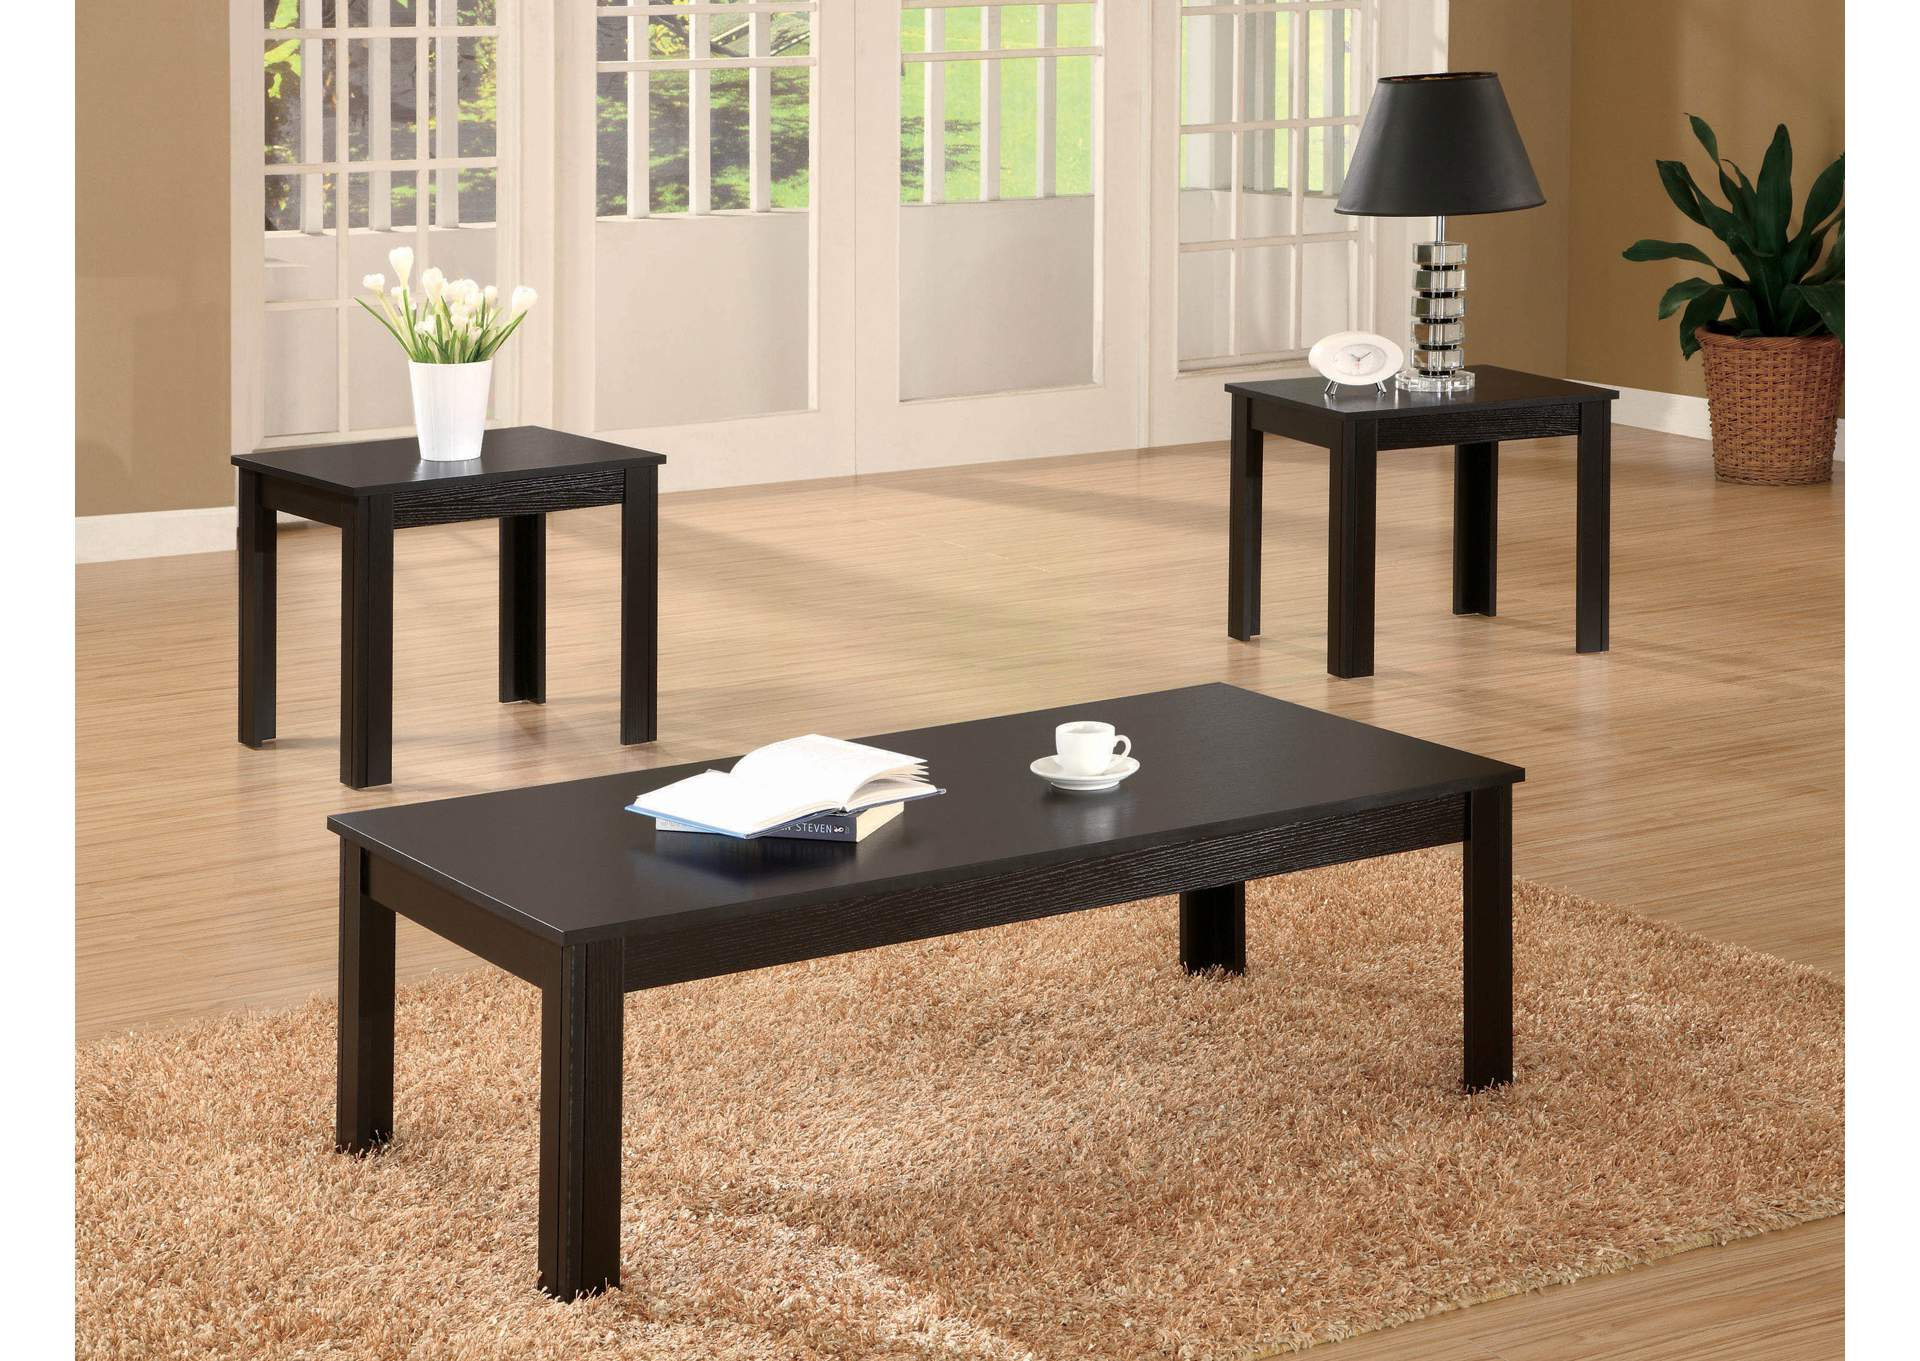 Black Transitional Three-Piece Occasional Set,Coaster Furniture